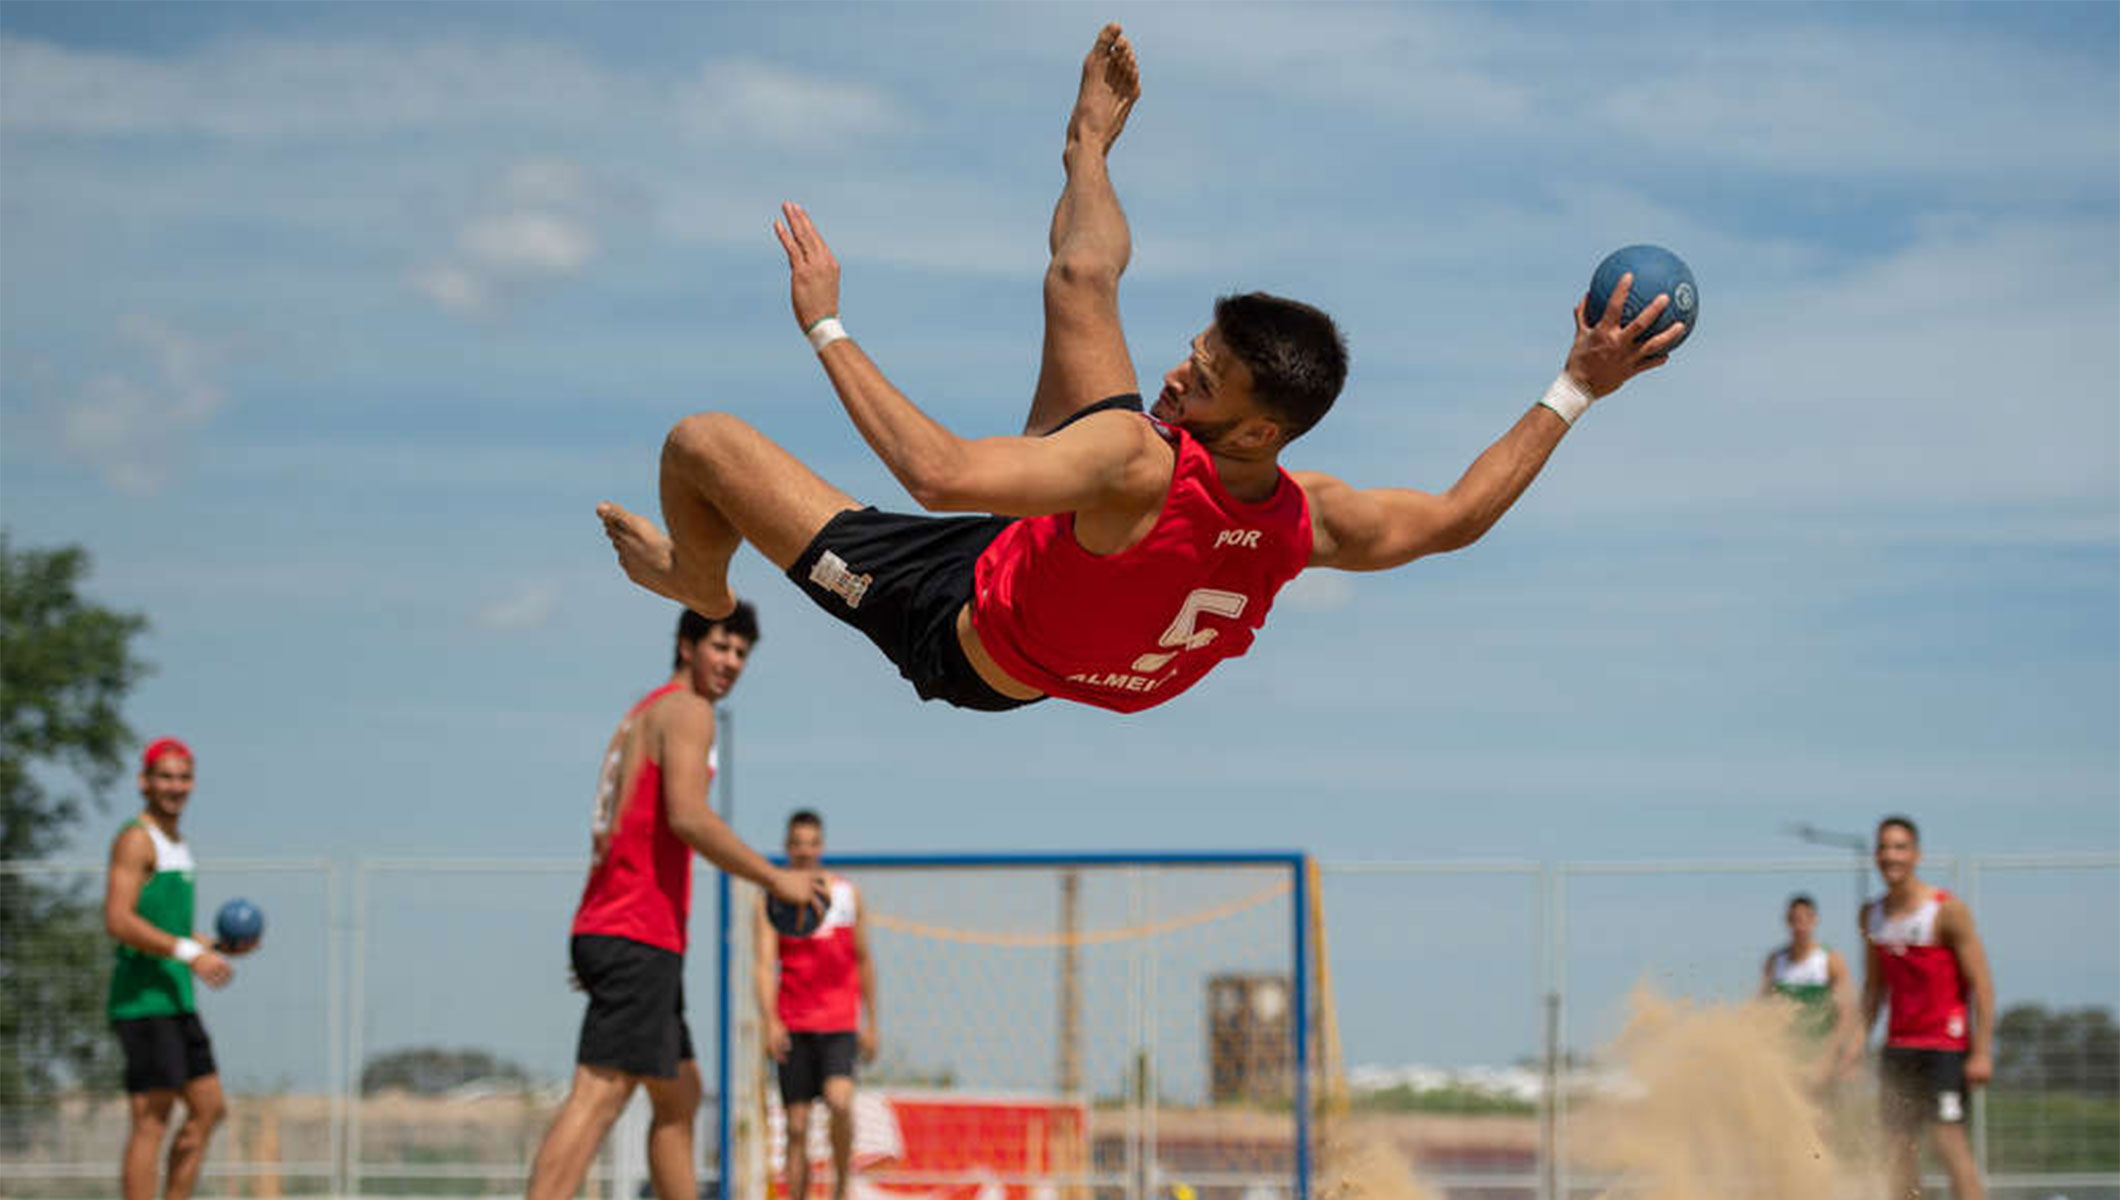 Airborne athletes make for exciting debut of beach handball